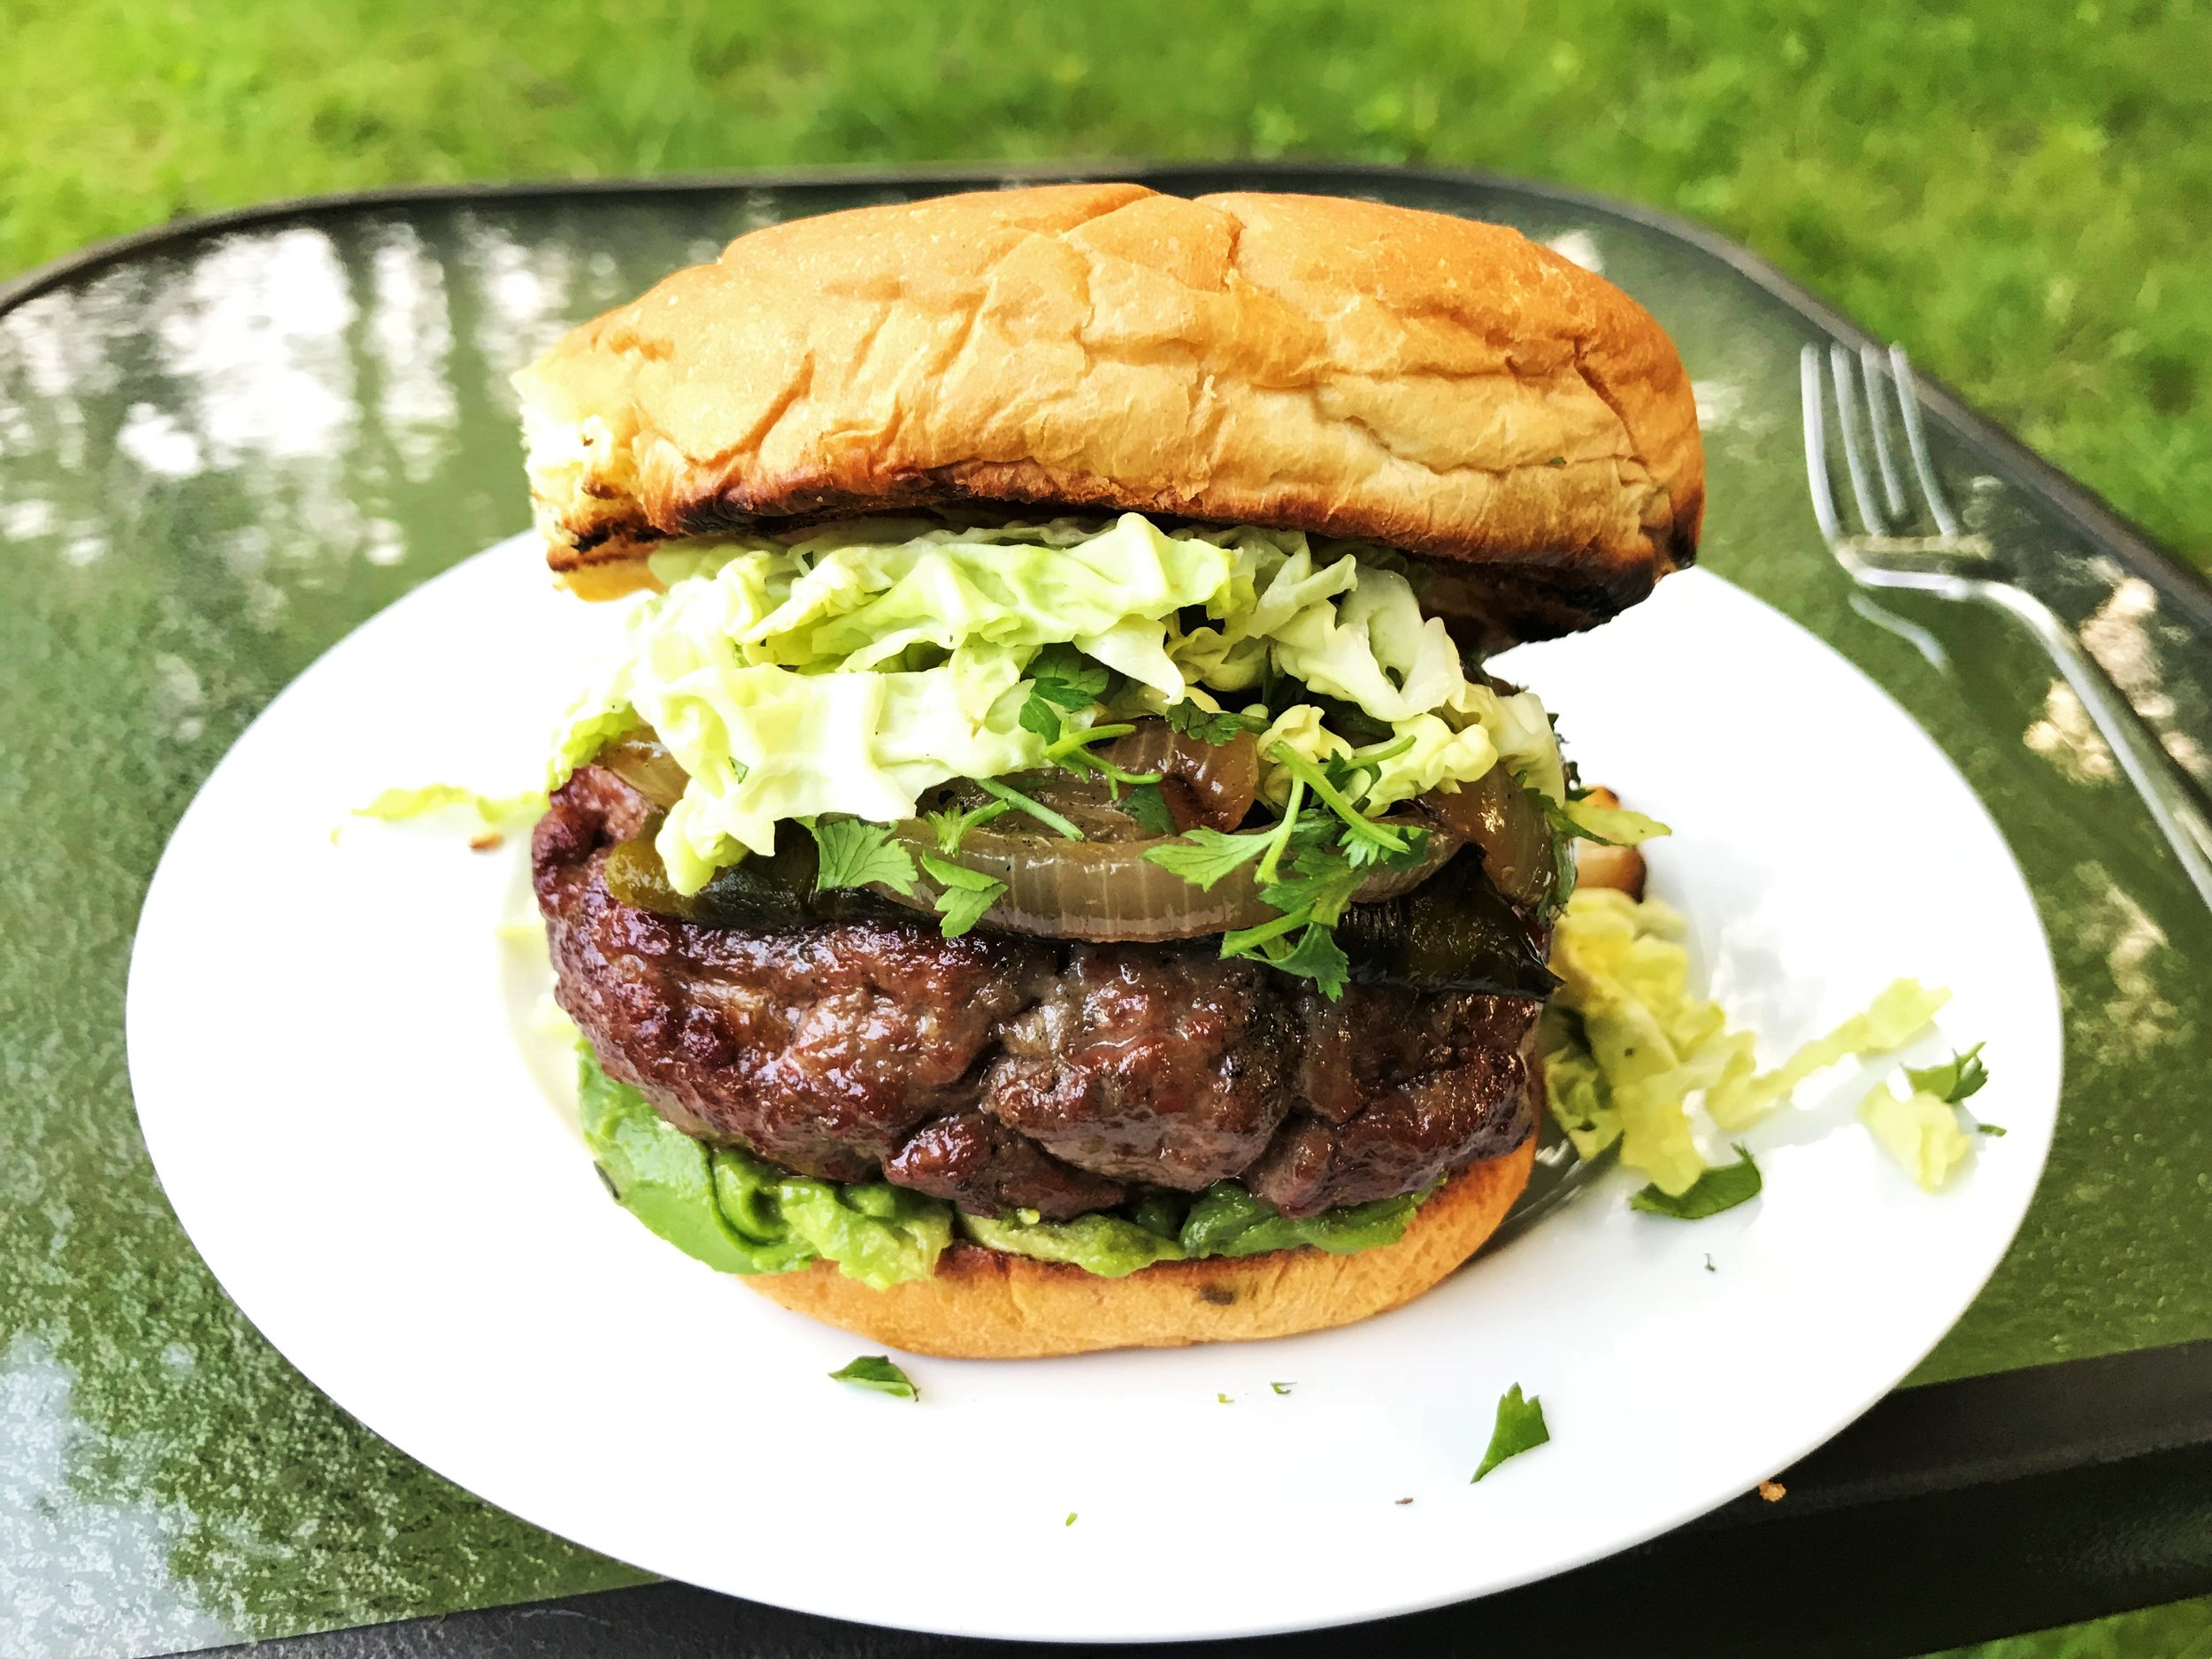 Mexican Stuffed Burger made in the Adventure Kitchen.